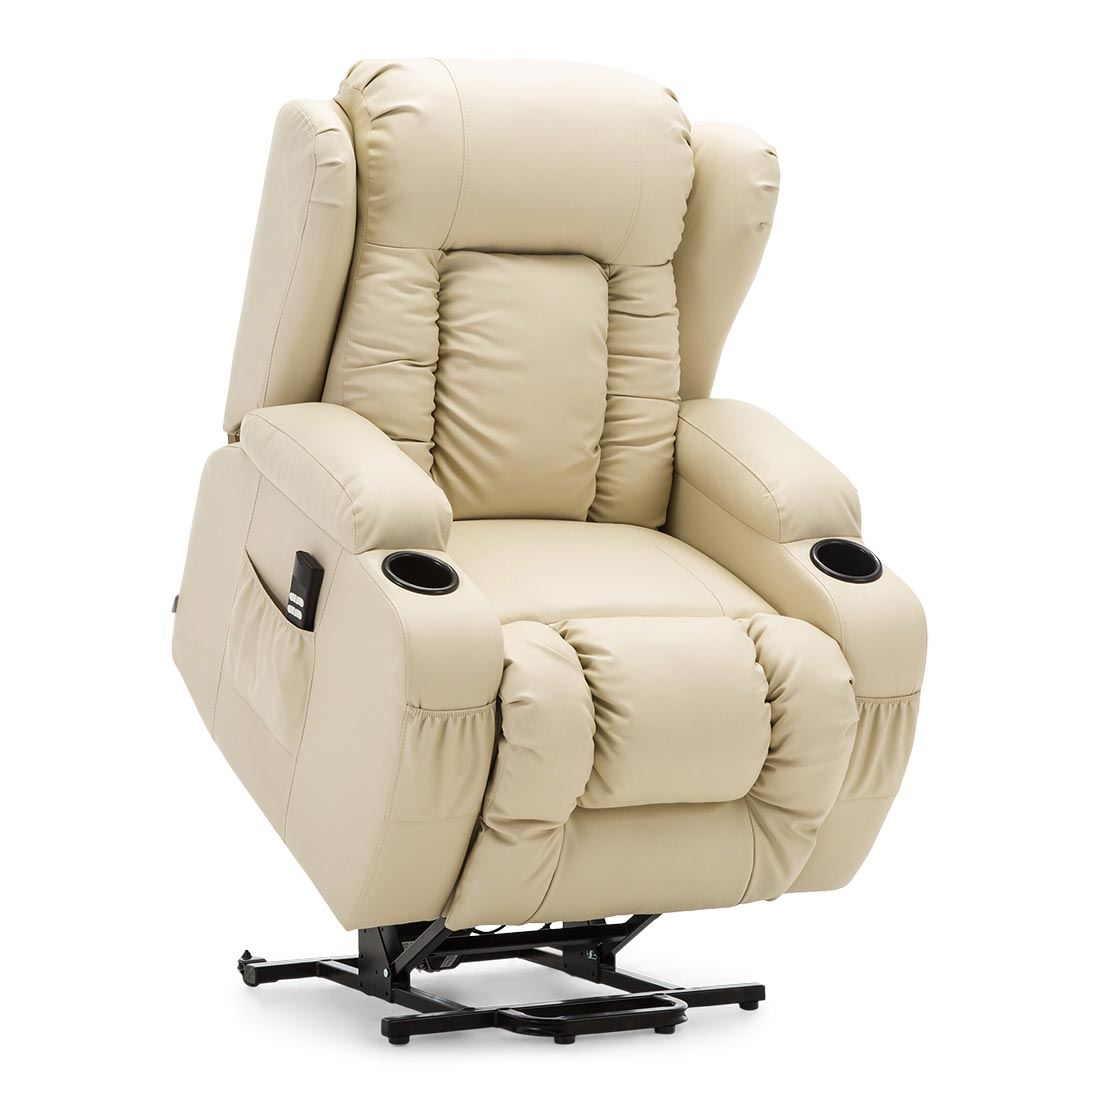 CAESAR-DUAL-MOTOR-RISER-RECLINER-LEATHER-MOBILITY-ARMCHAIR-MASSAGE-HEATED-CHAIR thumbnail 18